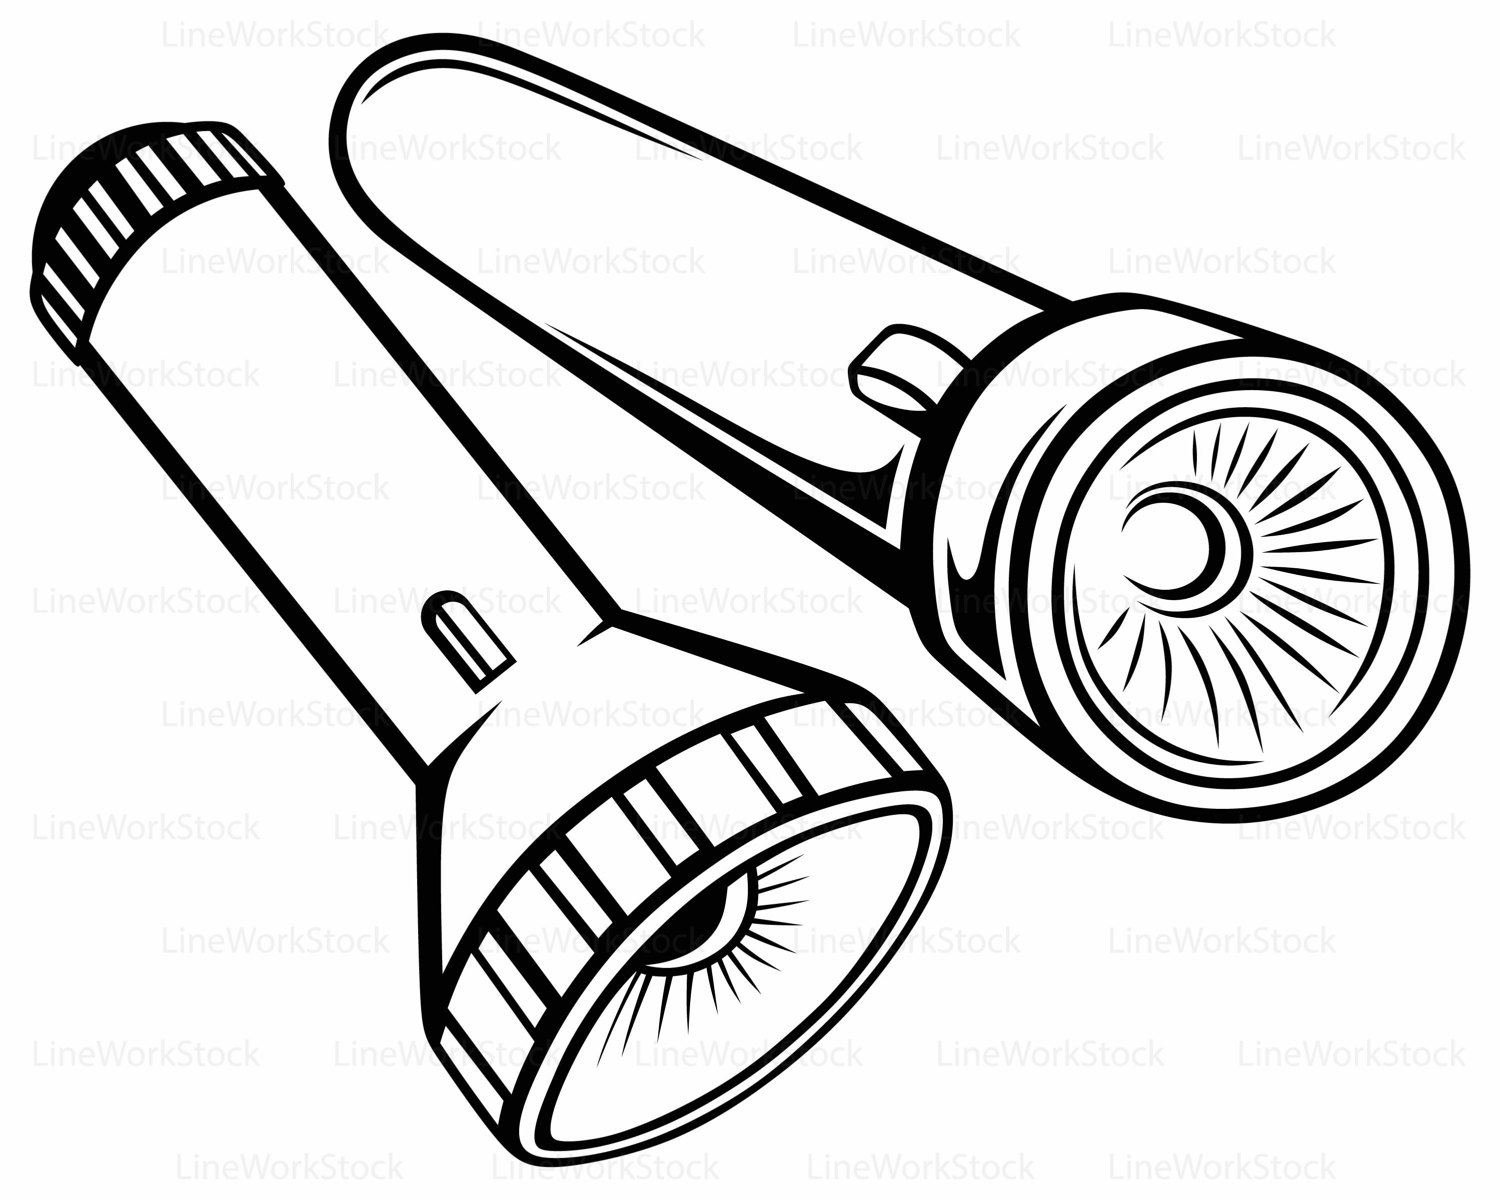 Flashlight free black and white clipart download Collection of Flashlight clipart | Free download best Flashlight ... download